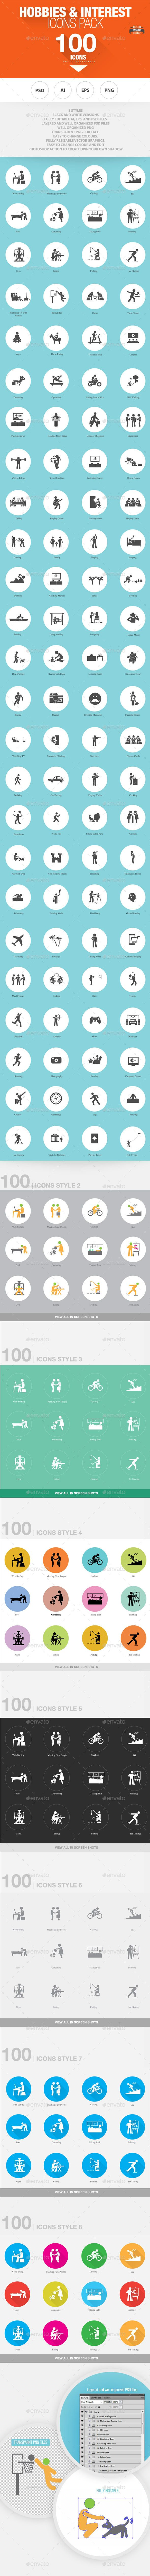 Pin By Cool Design On Best Icon Sets Pinterest Resume Icons App